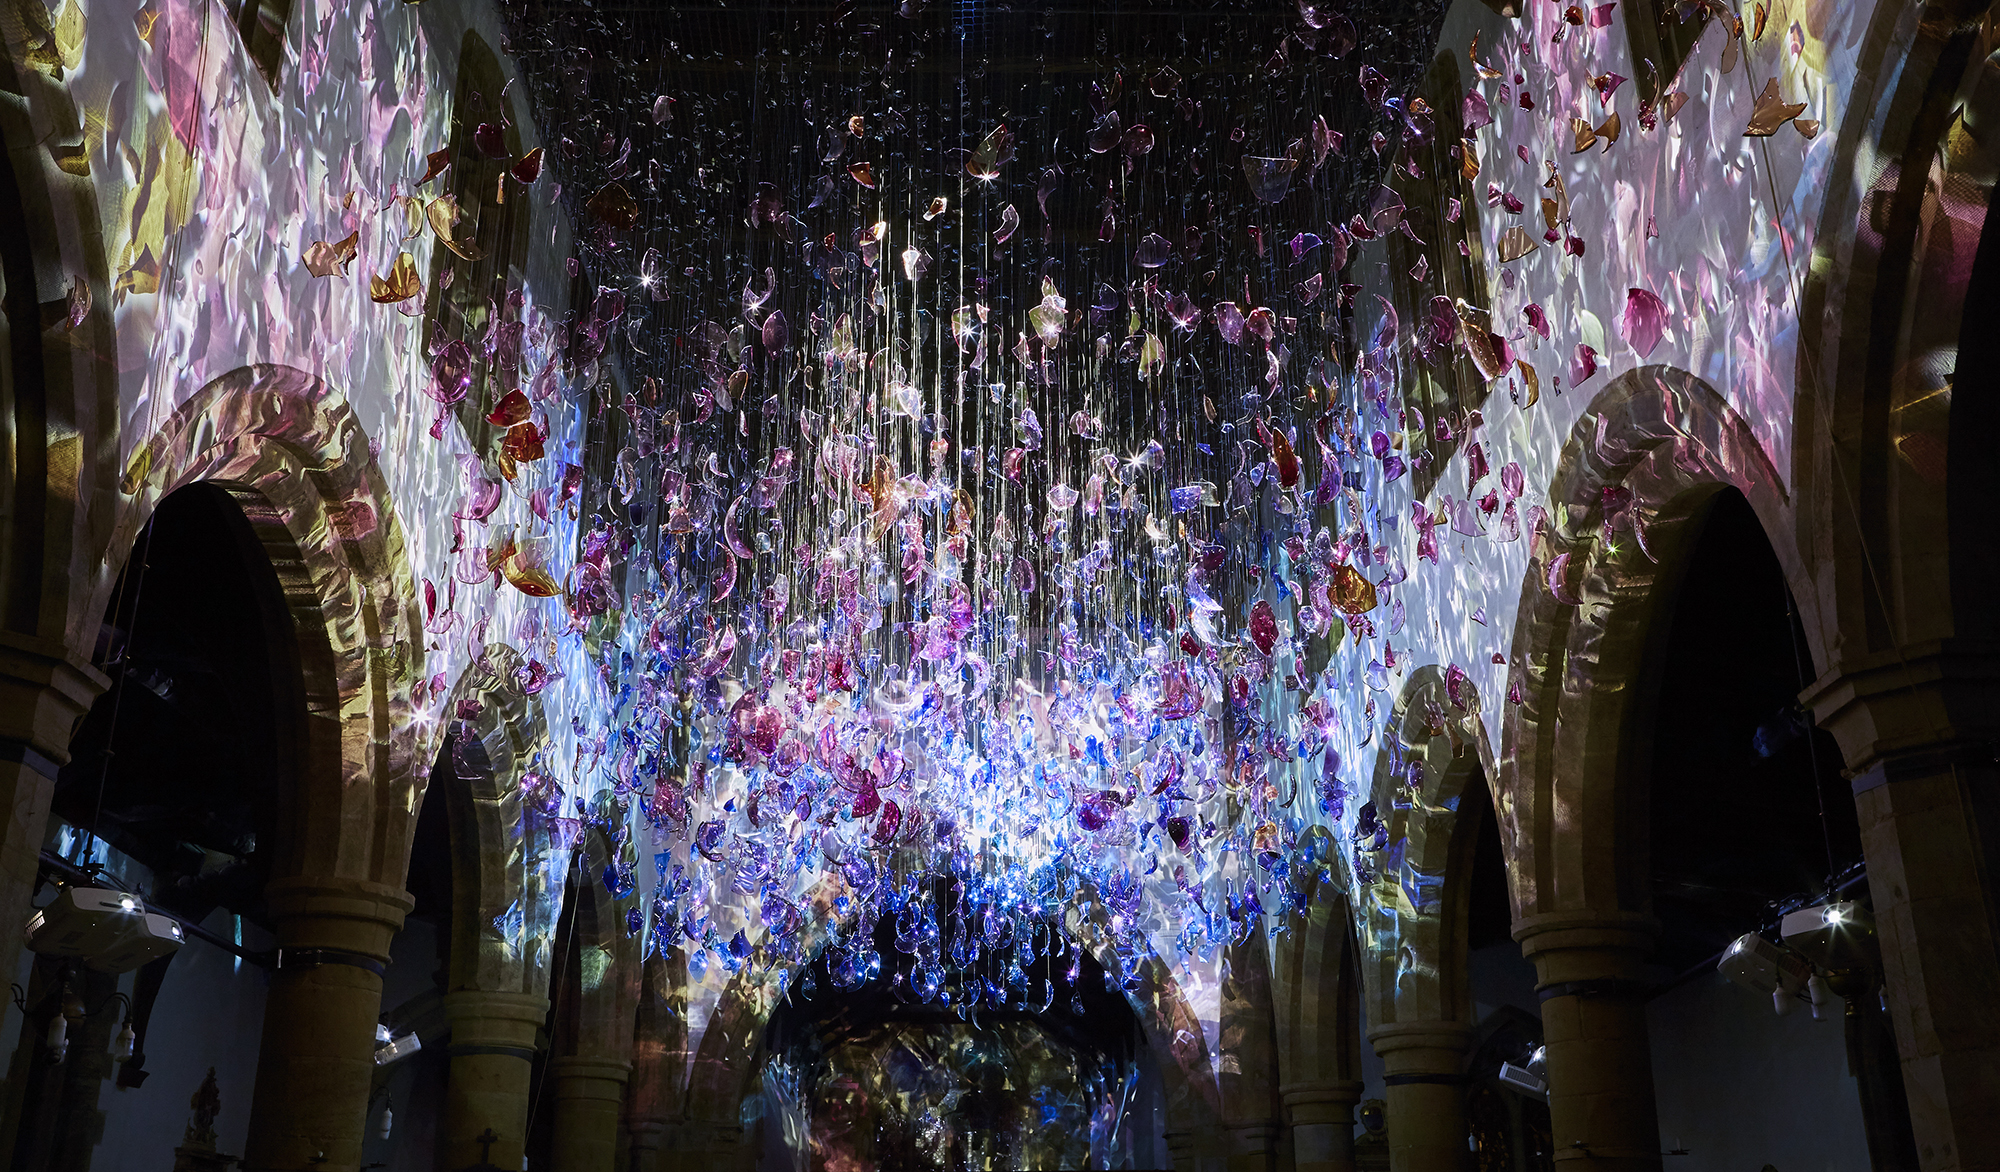 What Matters (The Scattering). 2300 suspended fragments of hand blown glass bubbles, steel,projectors. 2017